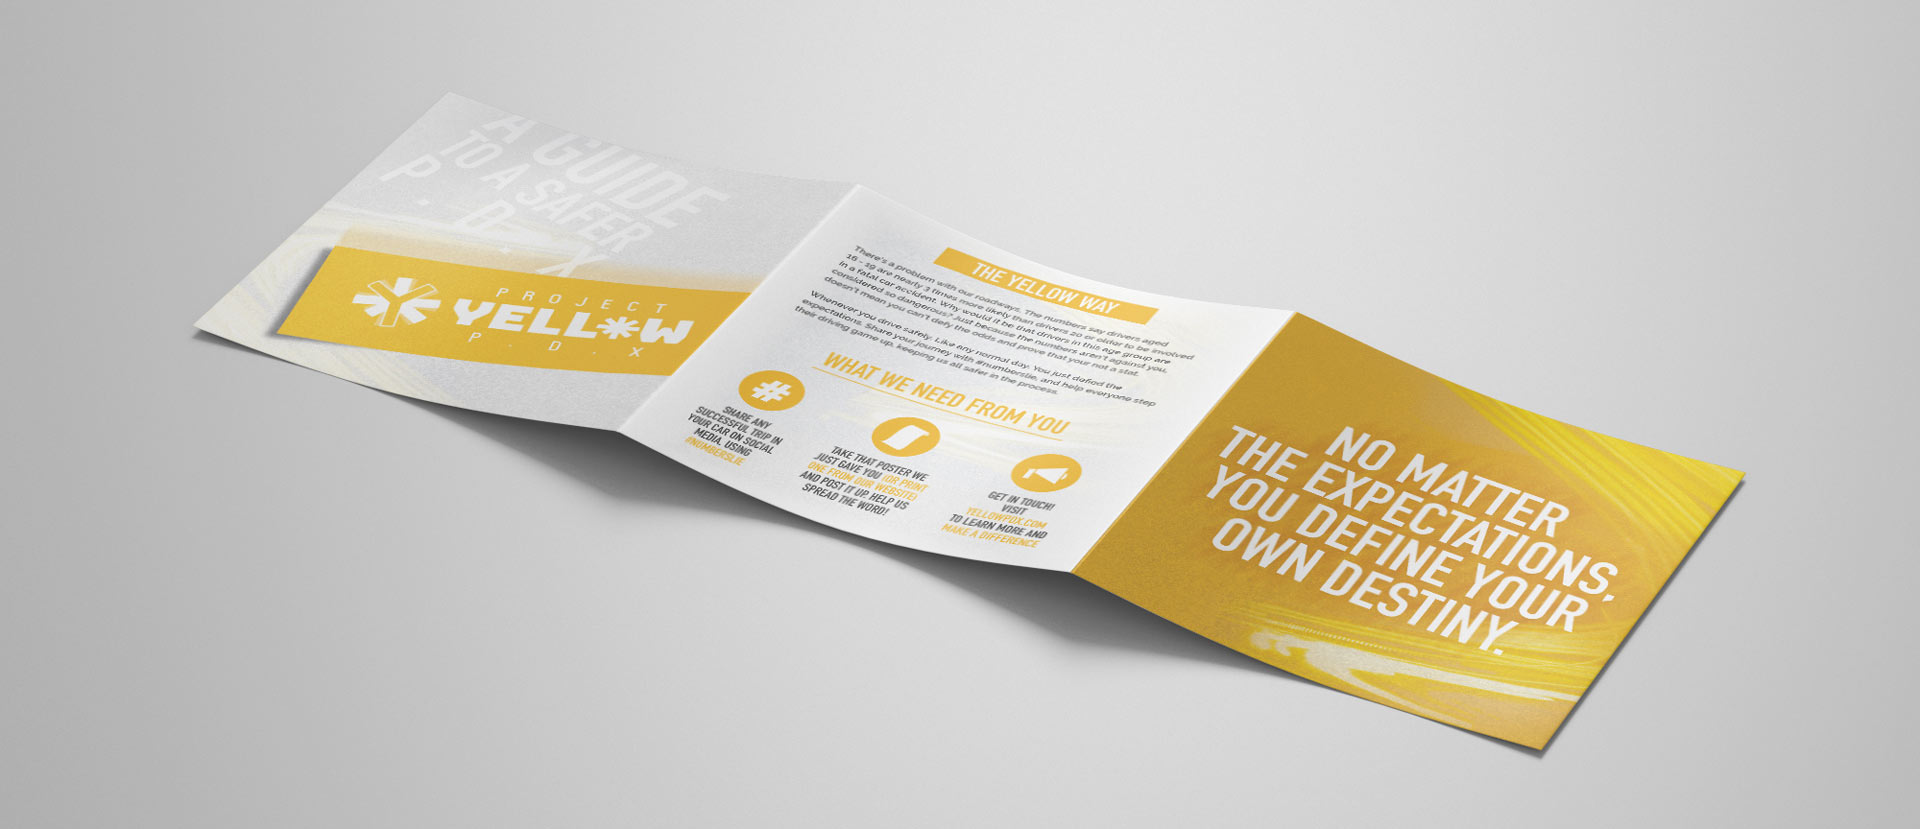 trifold brochure detailed view back pages inspiring design textured paper